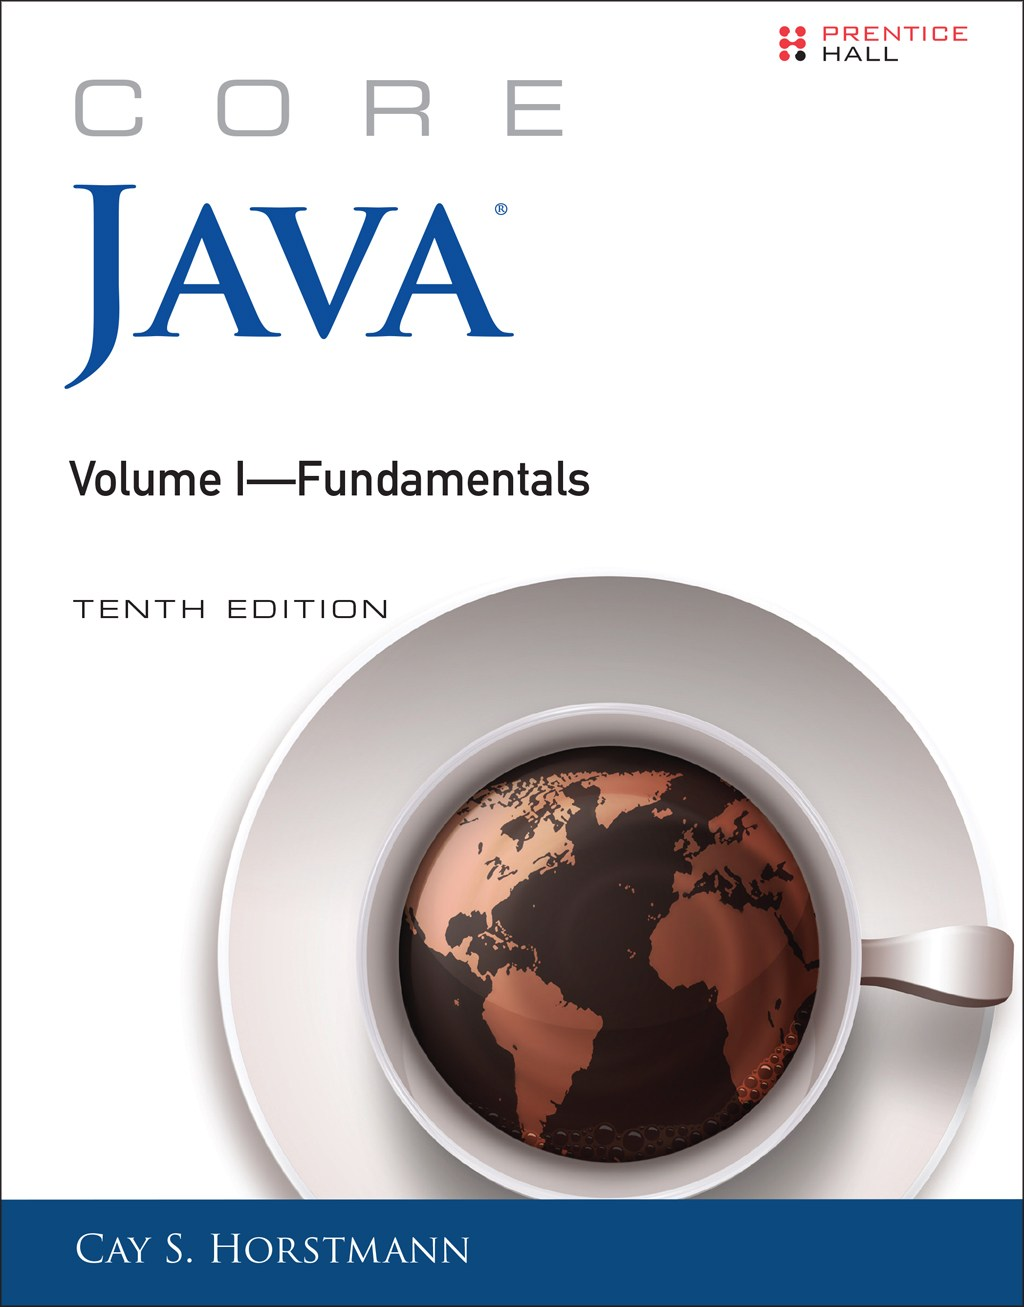 Core Java Volume I--Fundamentals, 10th Edition